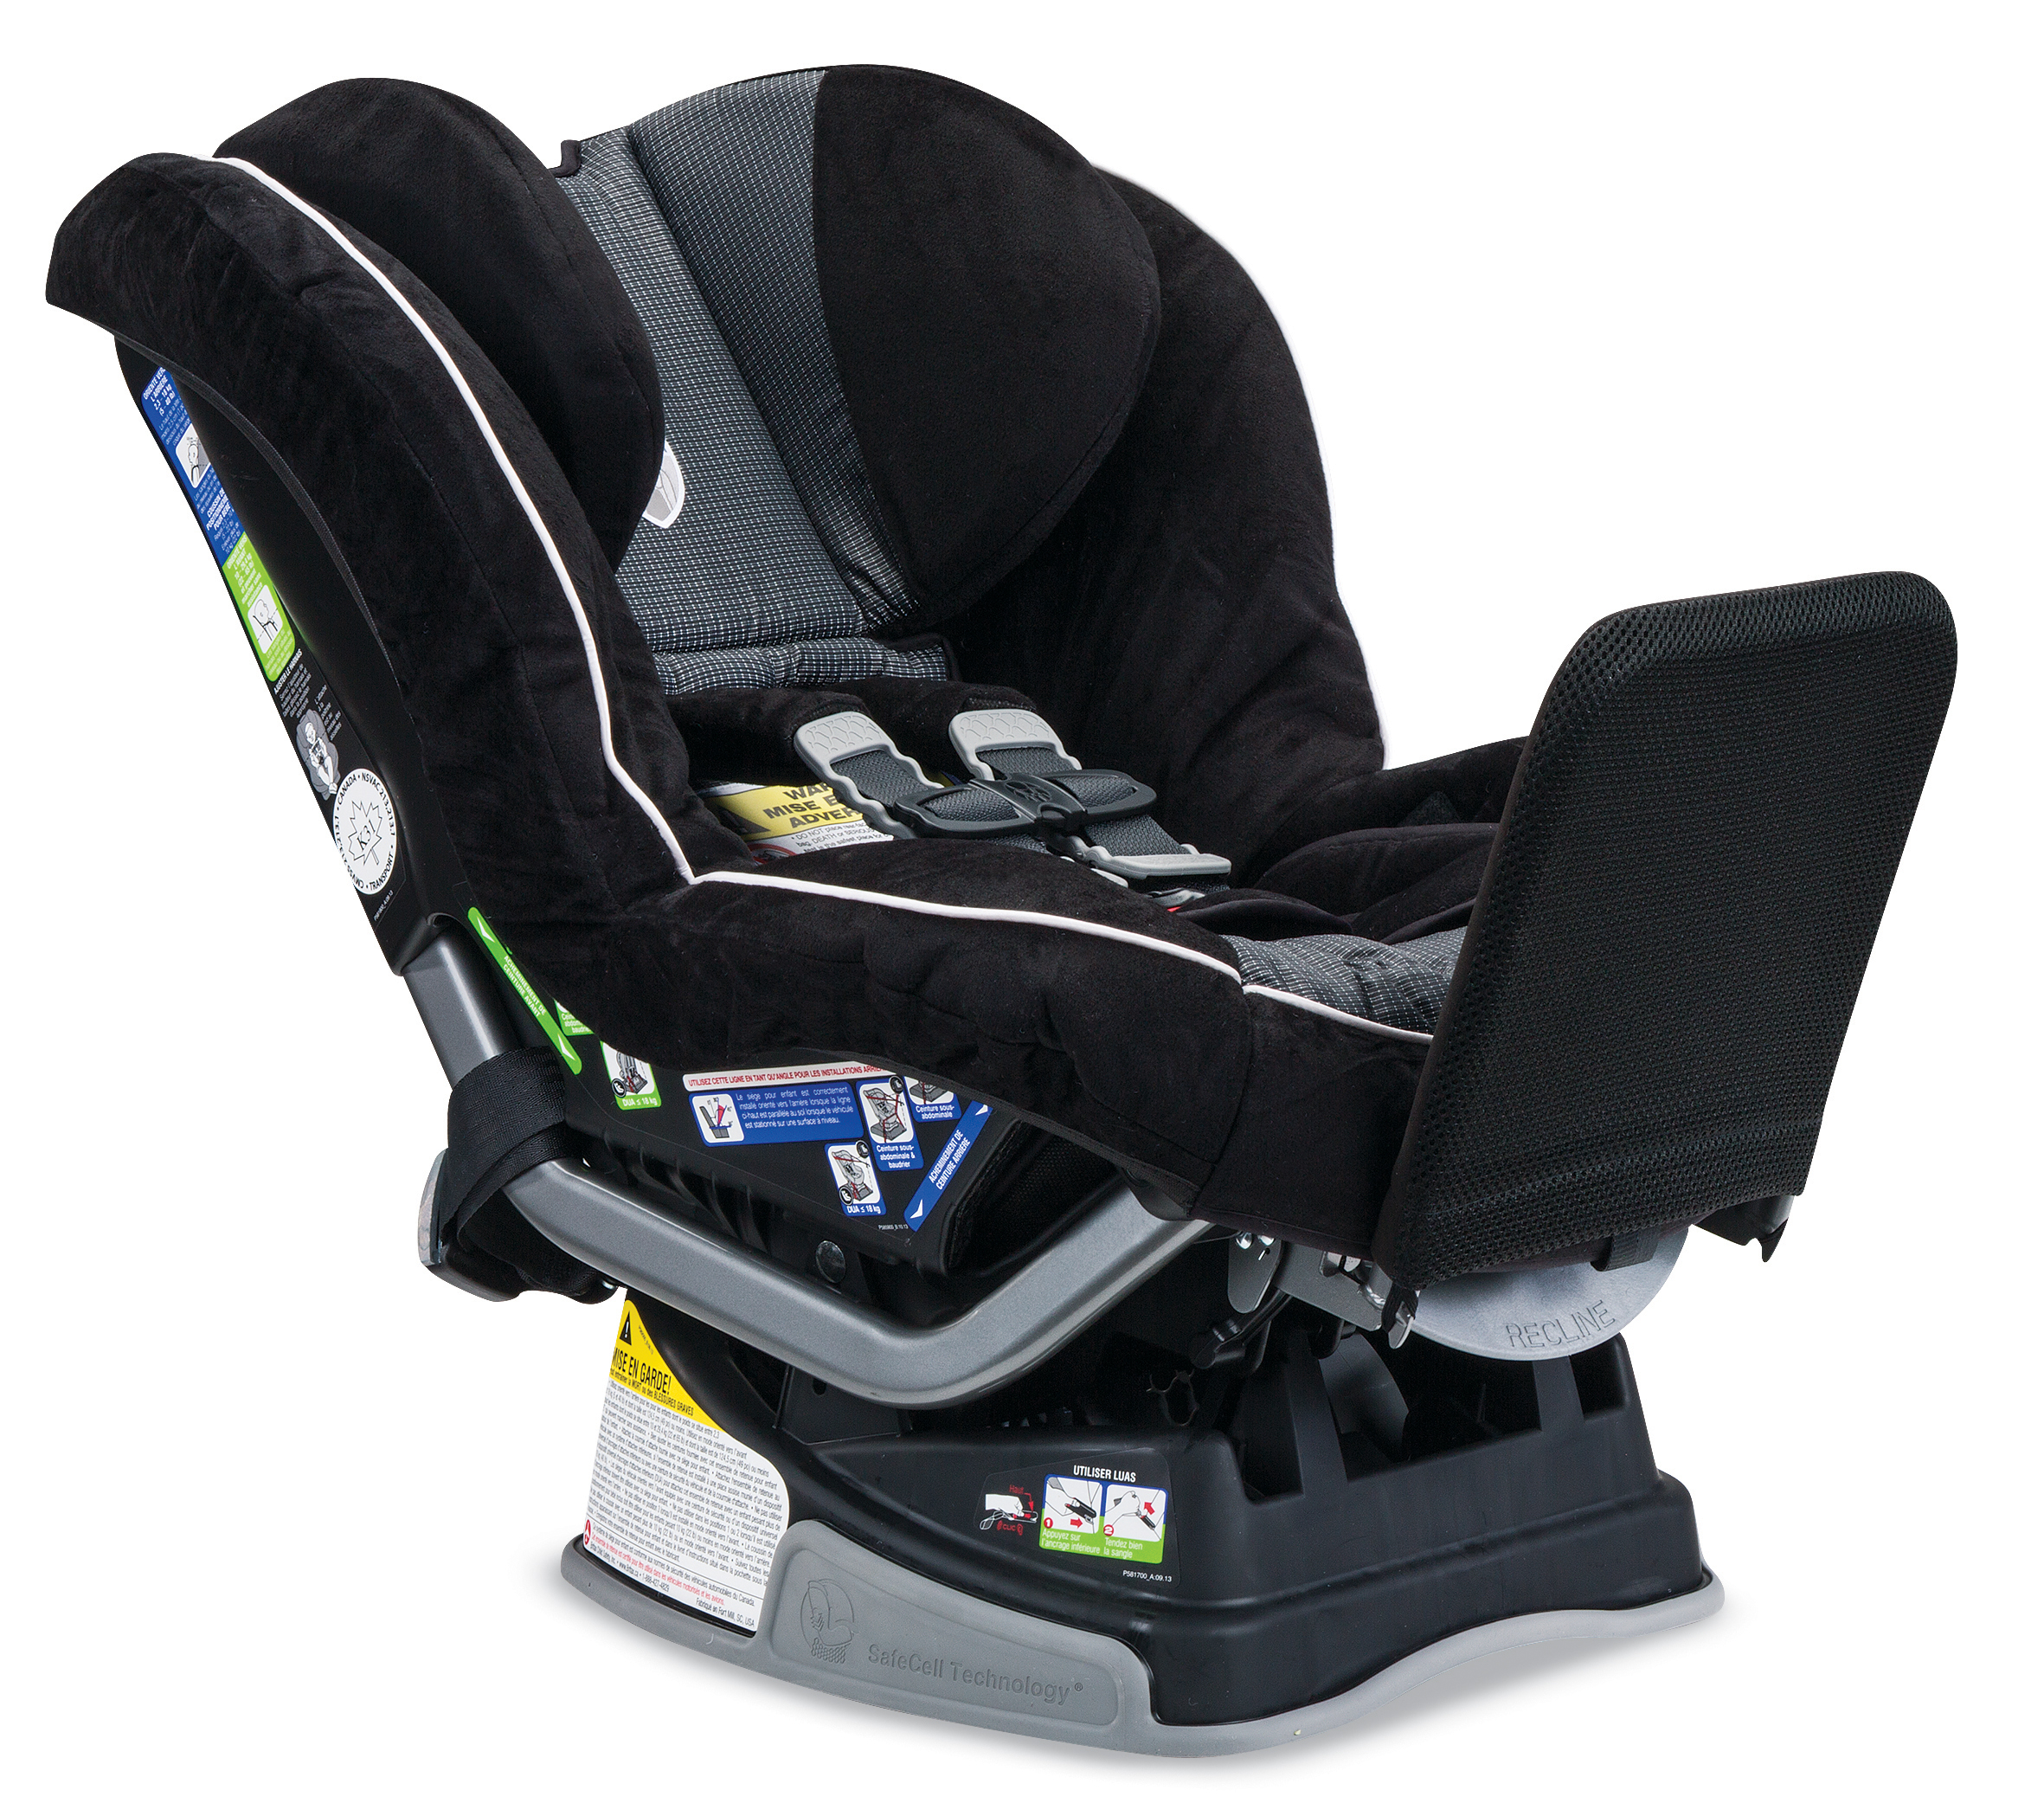 Britax Pavilion Convertible Carseat Review Another Impressive Option In The Lineup